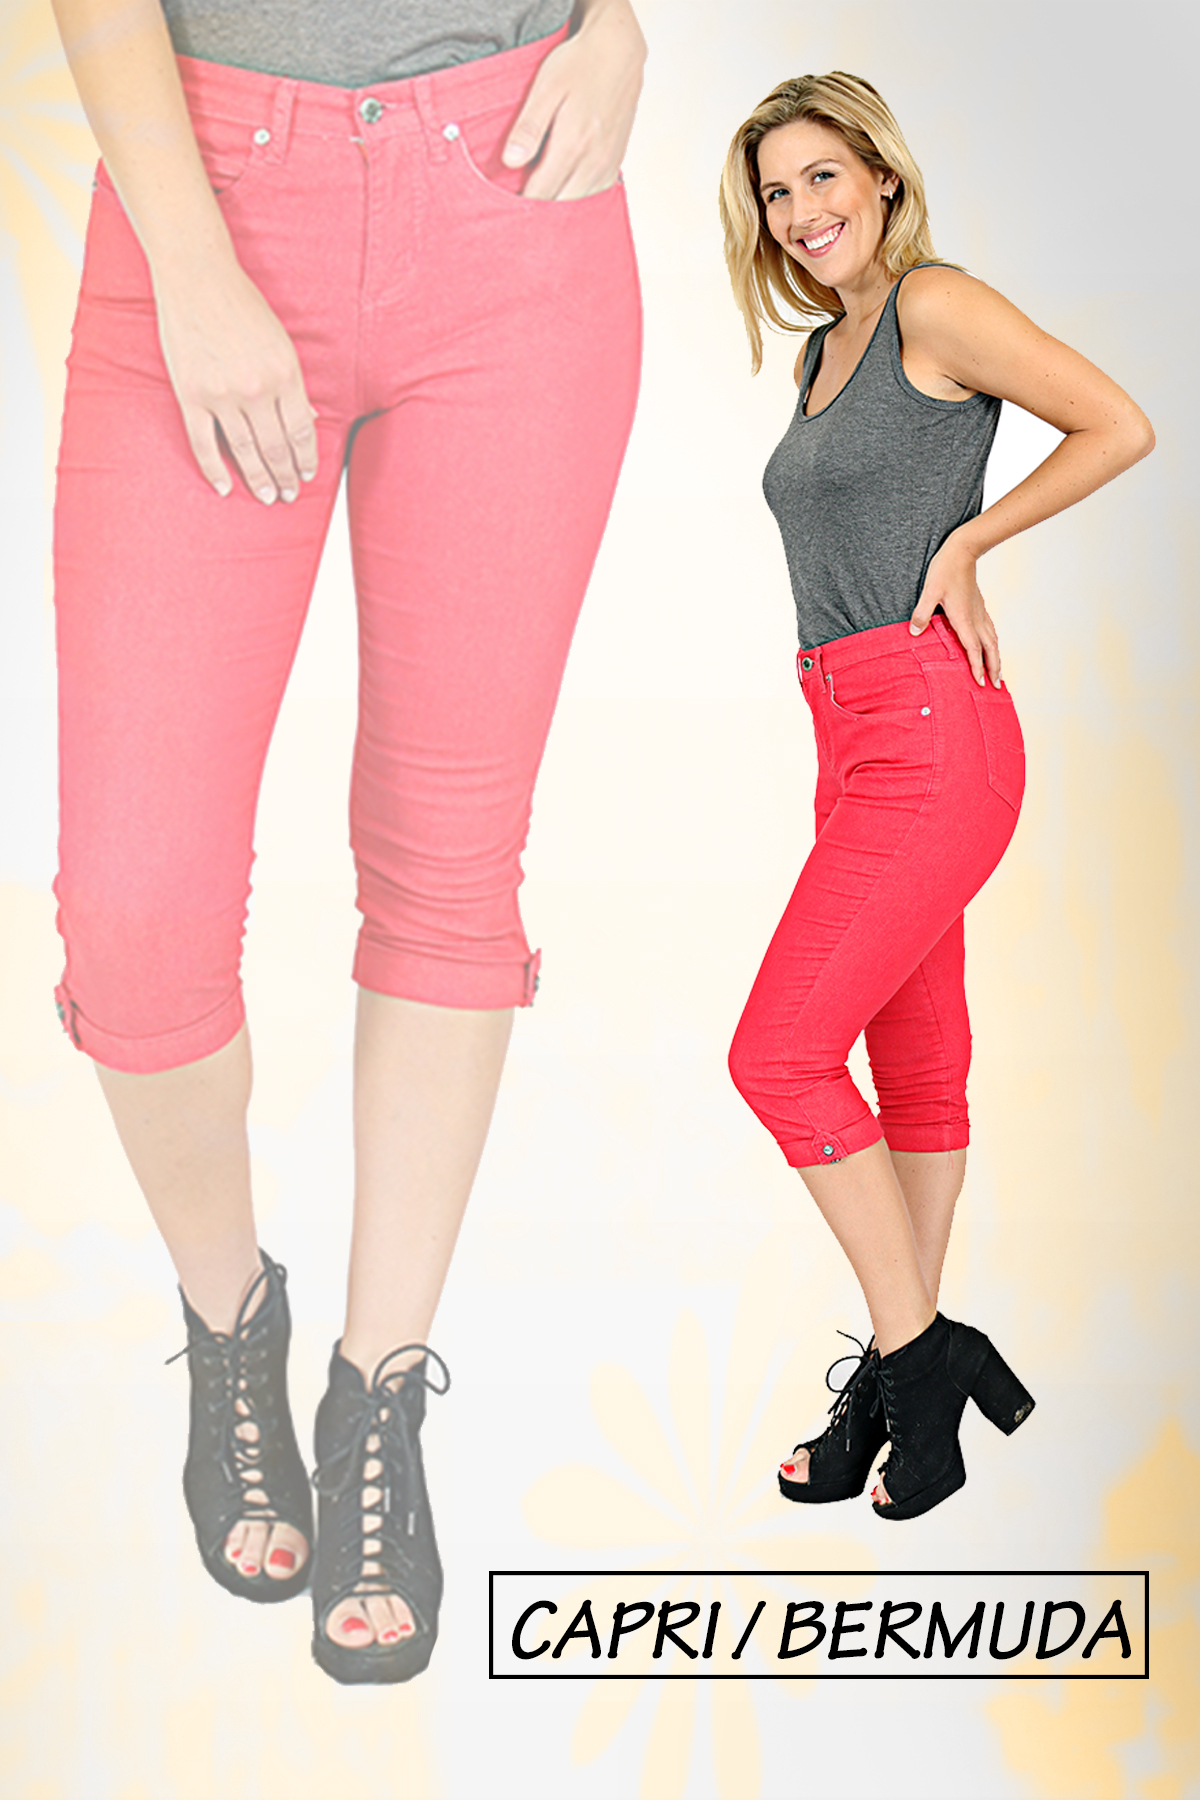 TrueSlim Women's Capri available in many styles and colors